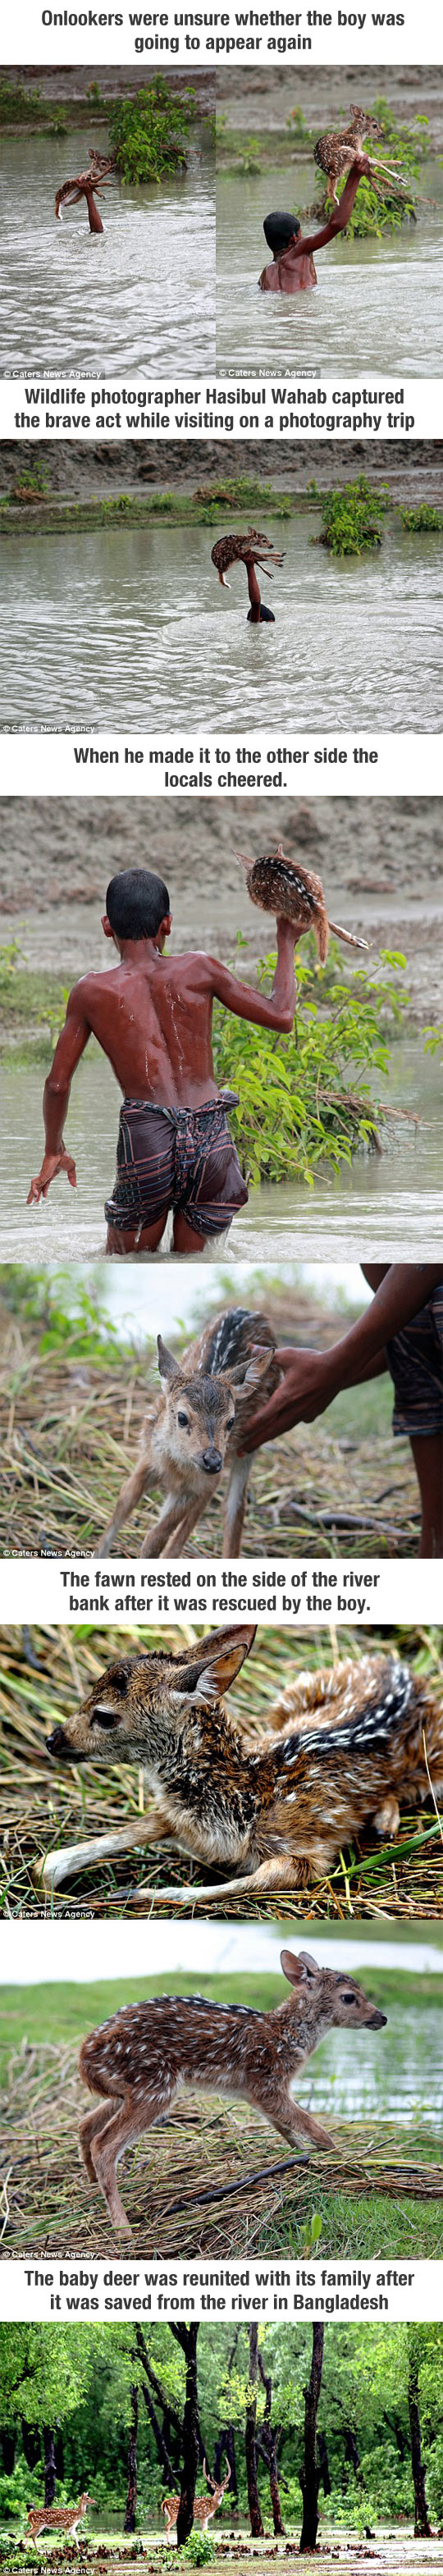 cool-kid-rescue-baby-deer